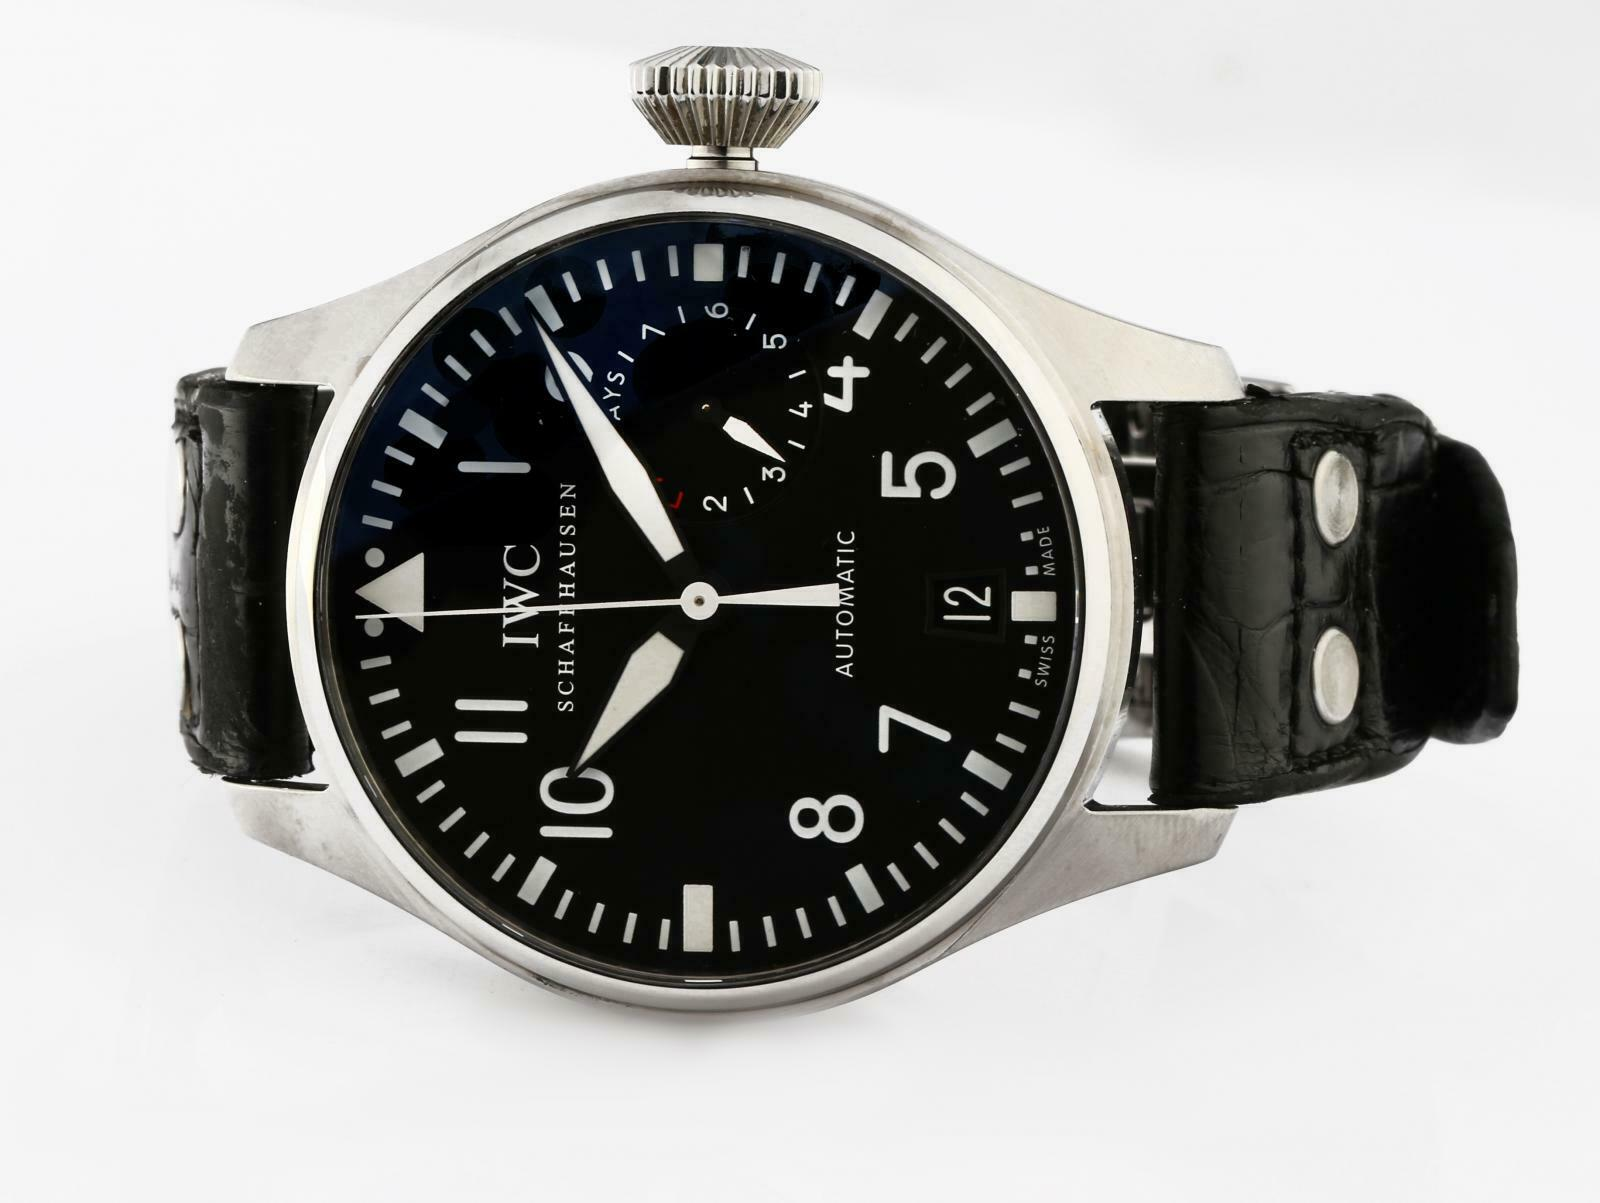 IWC SCHAFFHAUSEN Big Pilot Ref# 5009 Automatic Power Reserve Wristwatch - watch picture 1